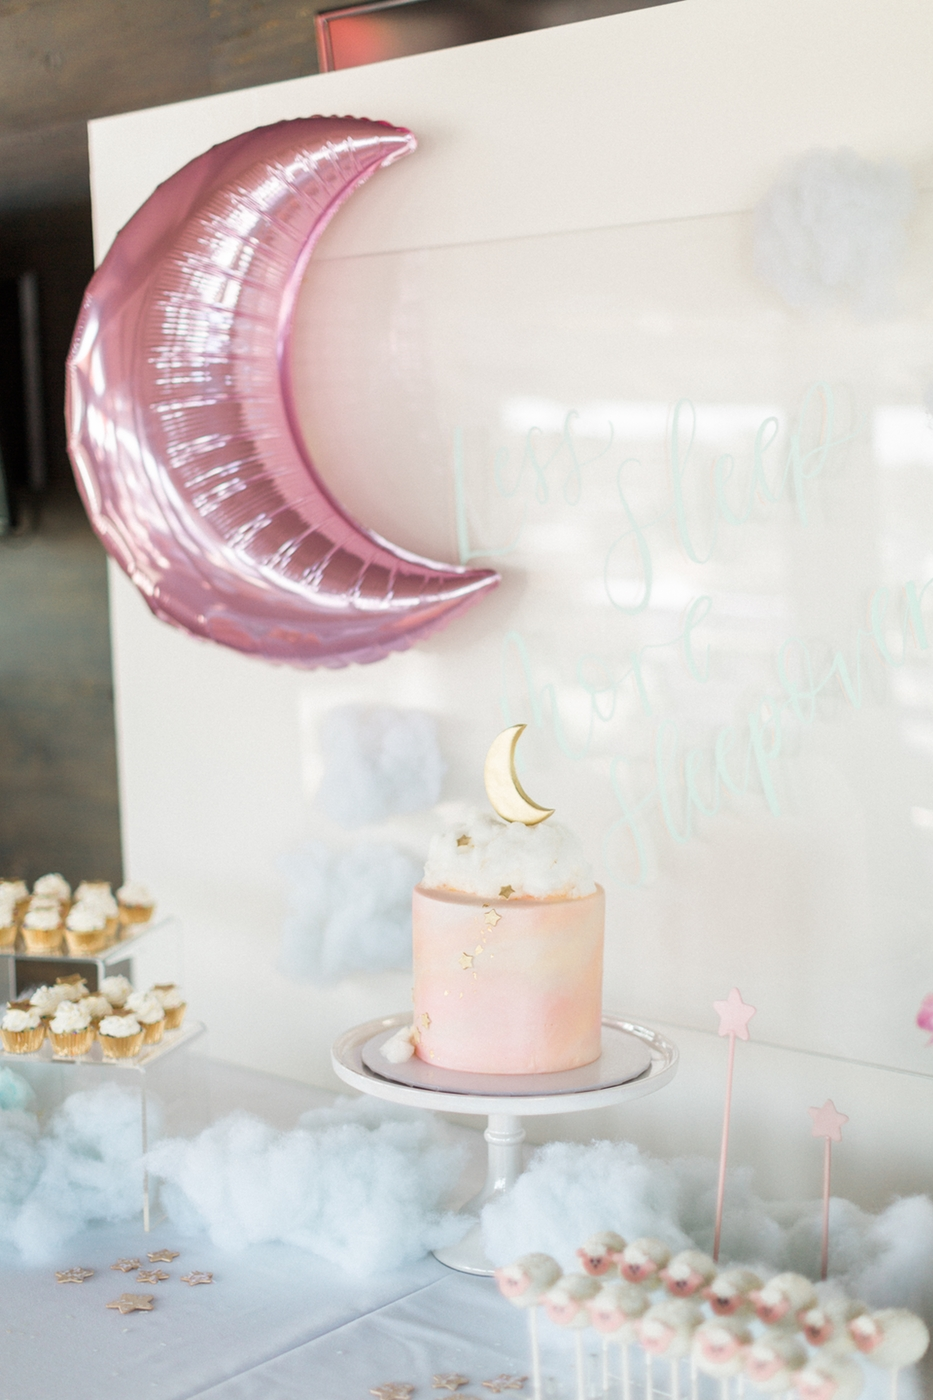 Penelopes-4th-B-Day-Party-11.jpg